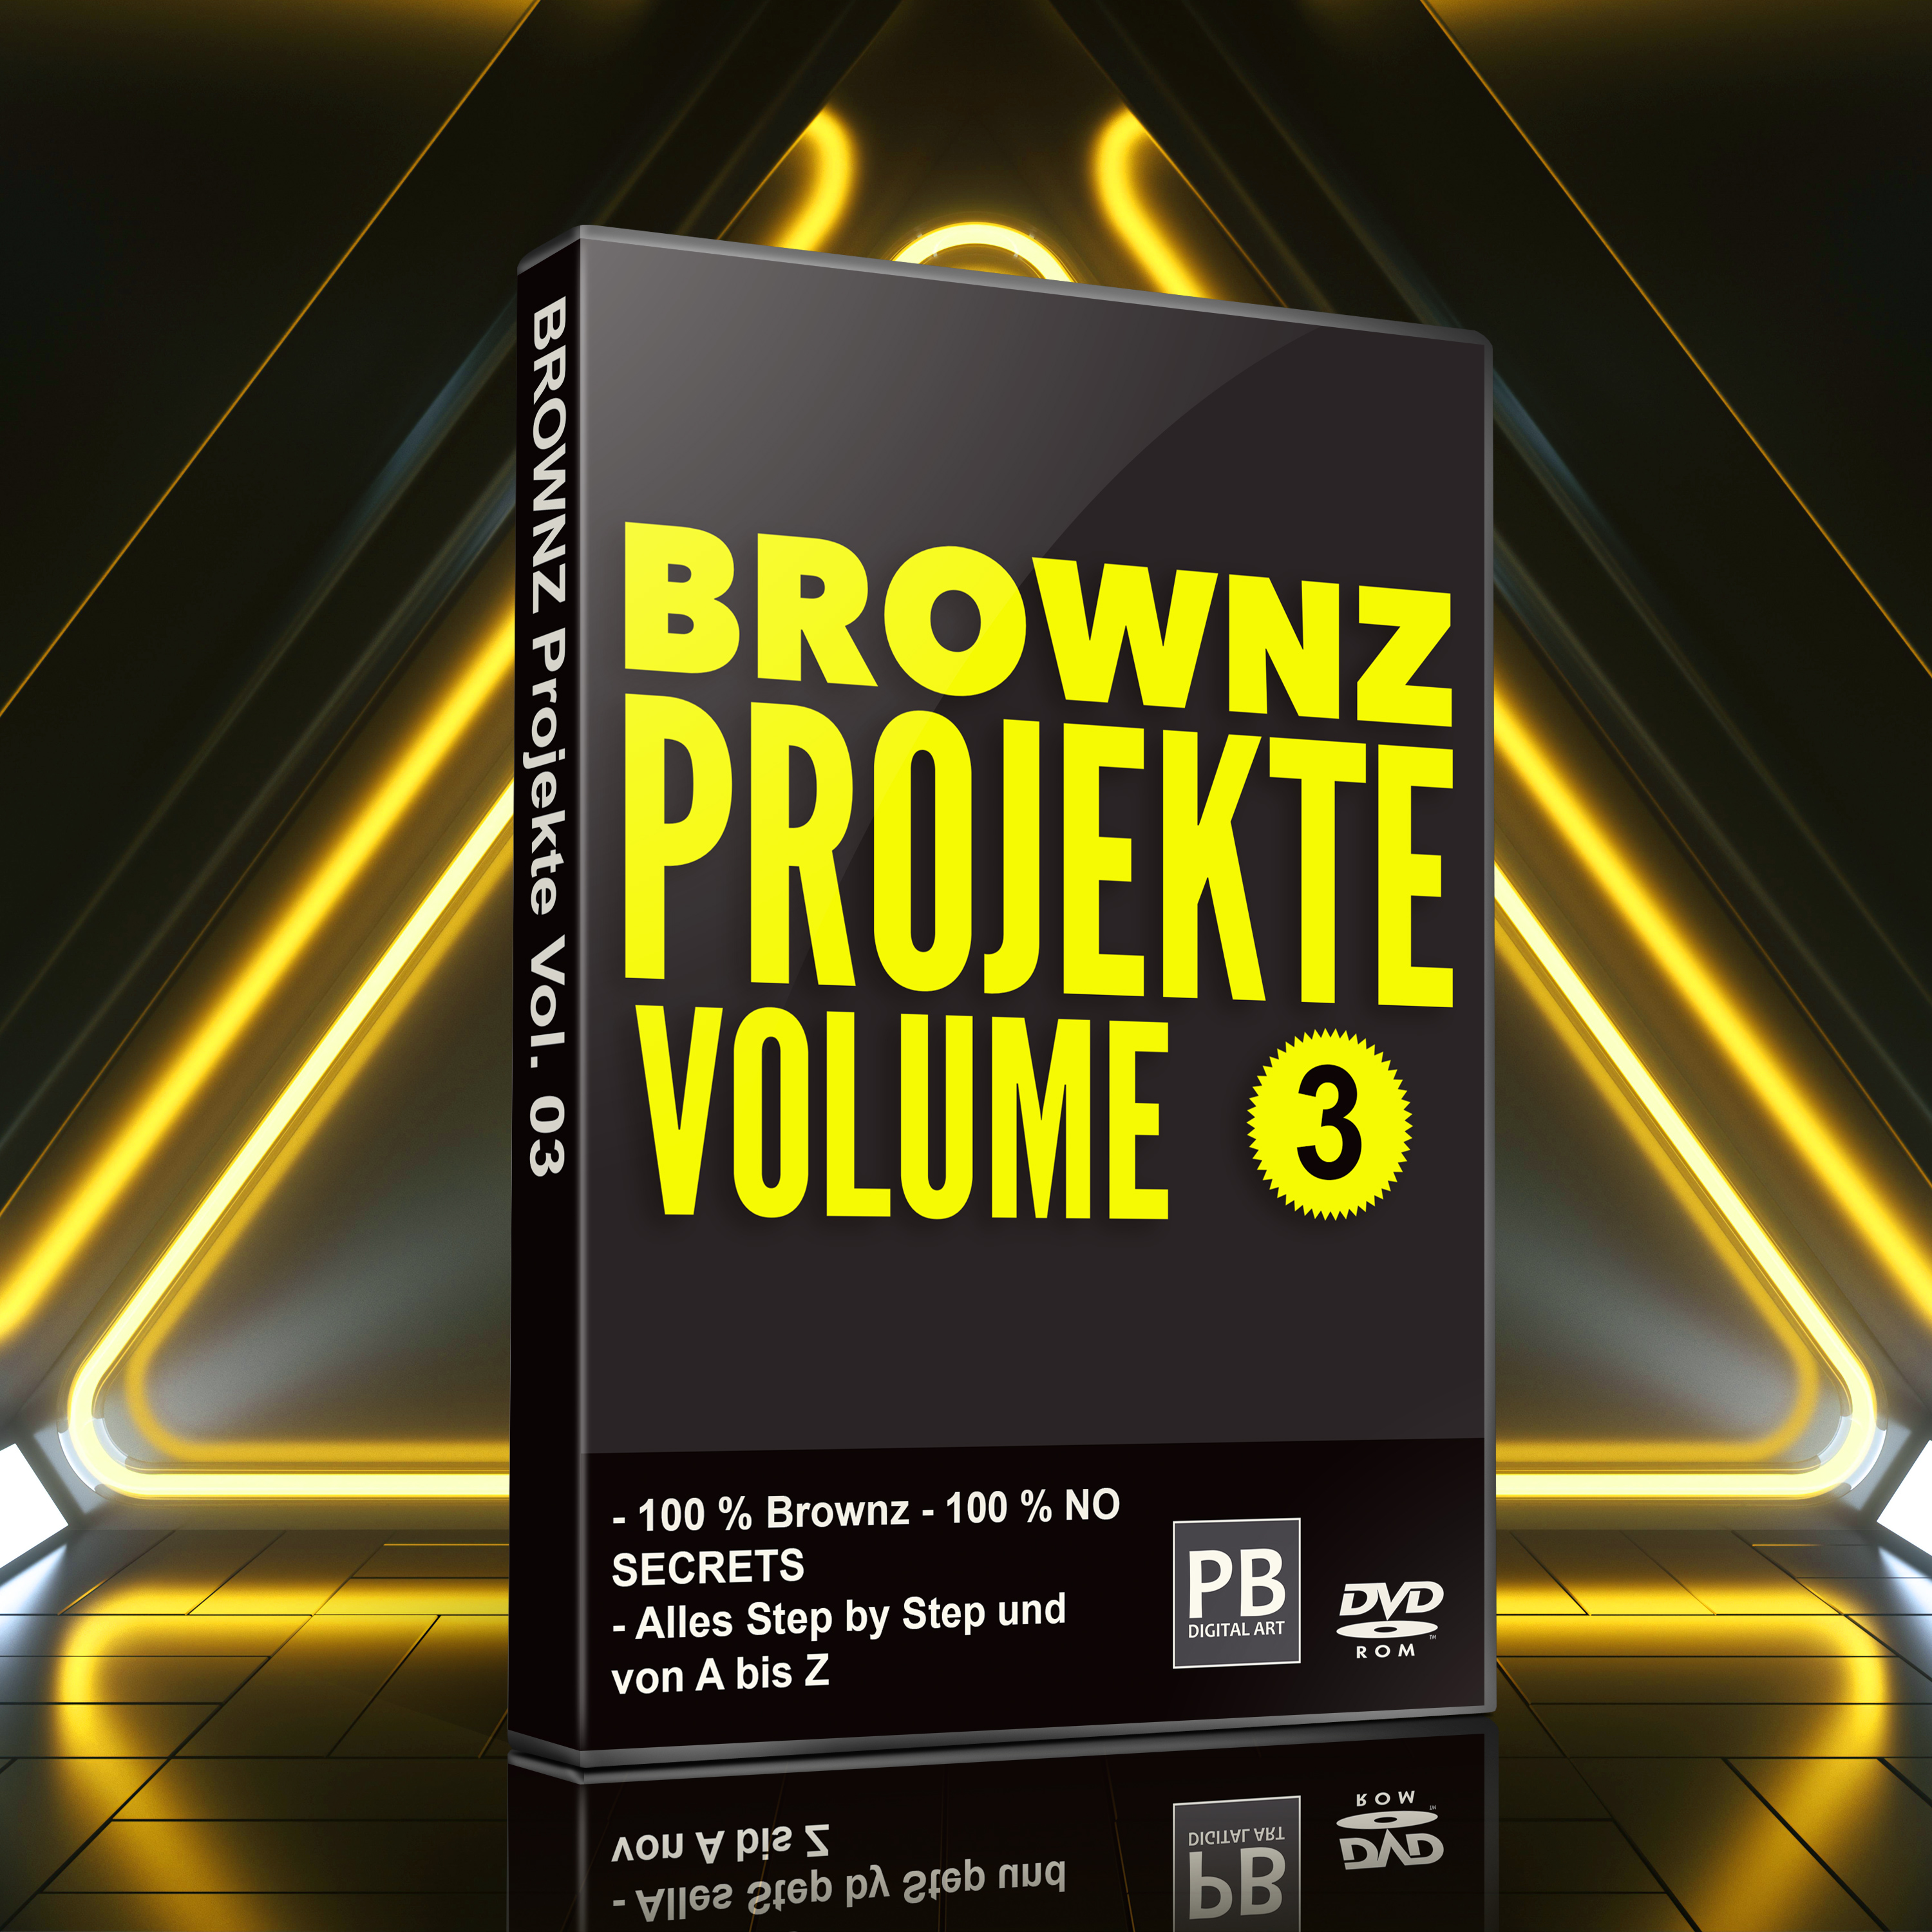 BrownzProjects03WERBUNG